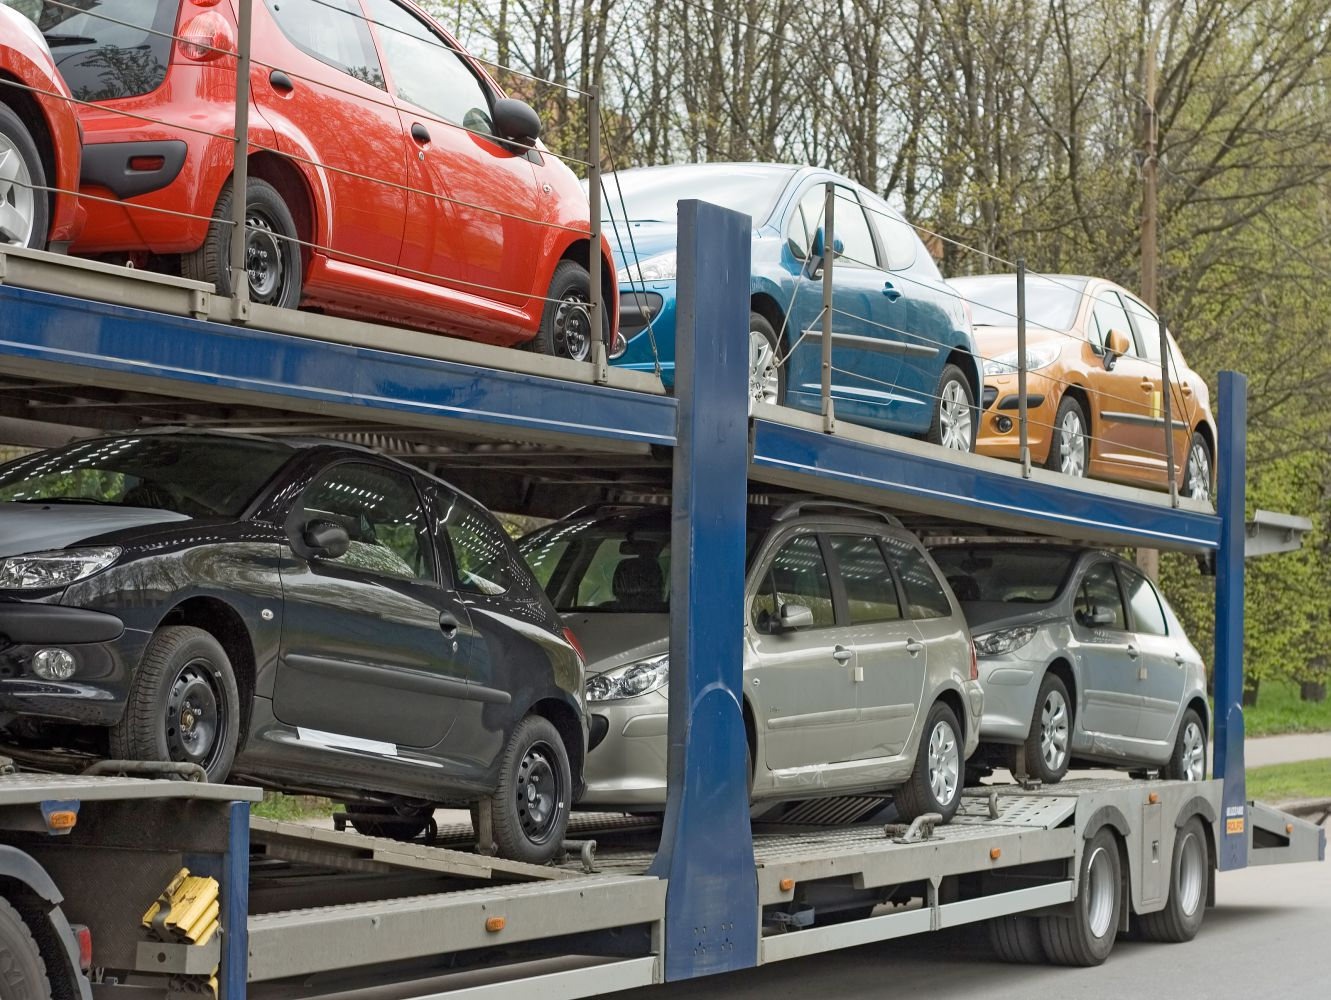 Cars carried on auto towing truck in Carthage, OH